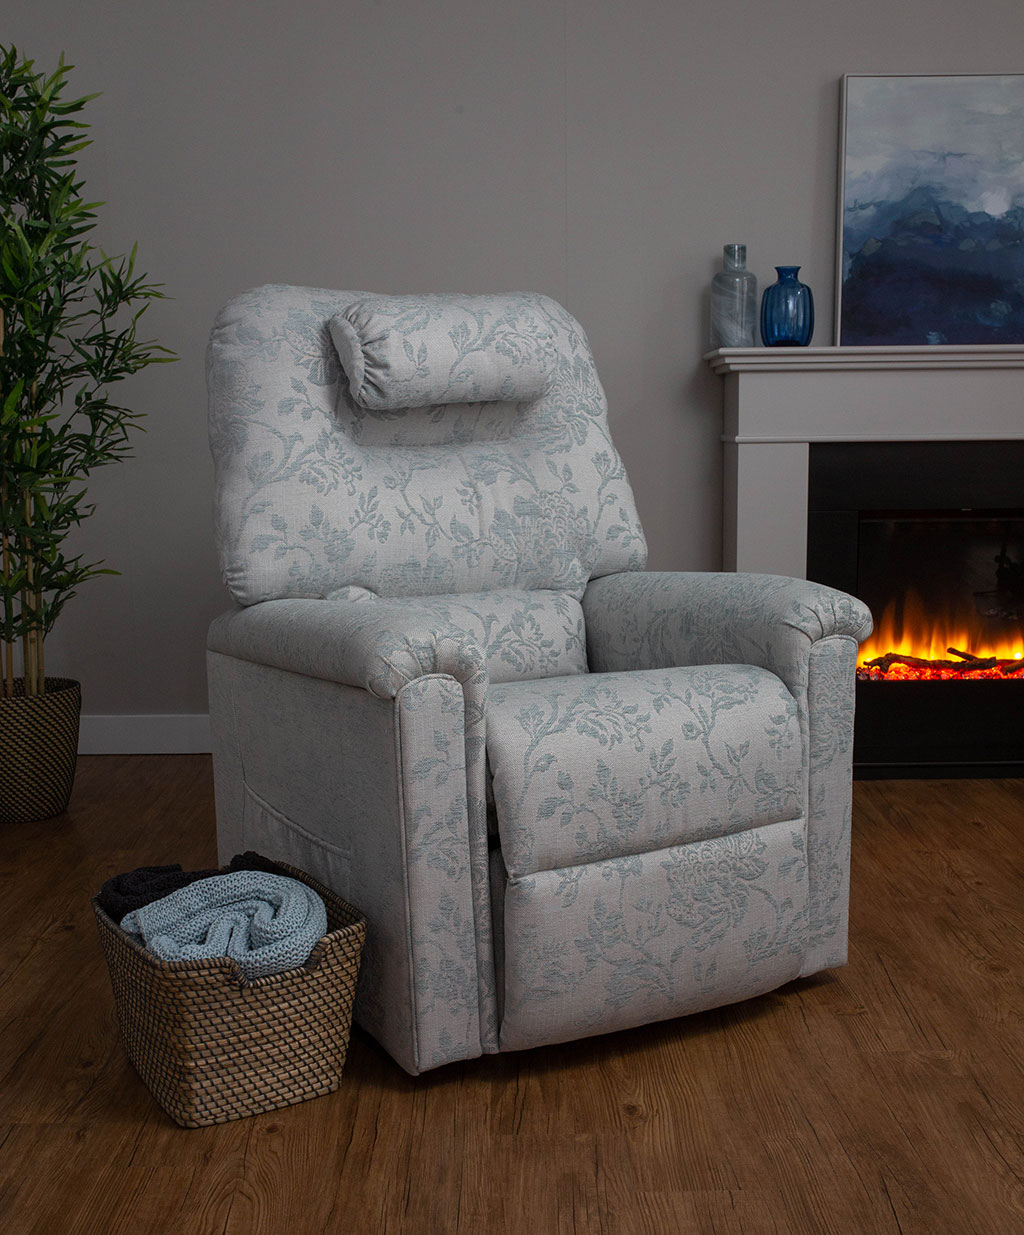 Blenheim riser recliner chair